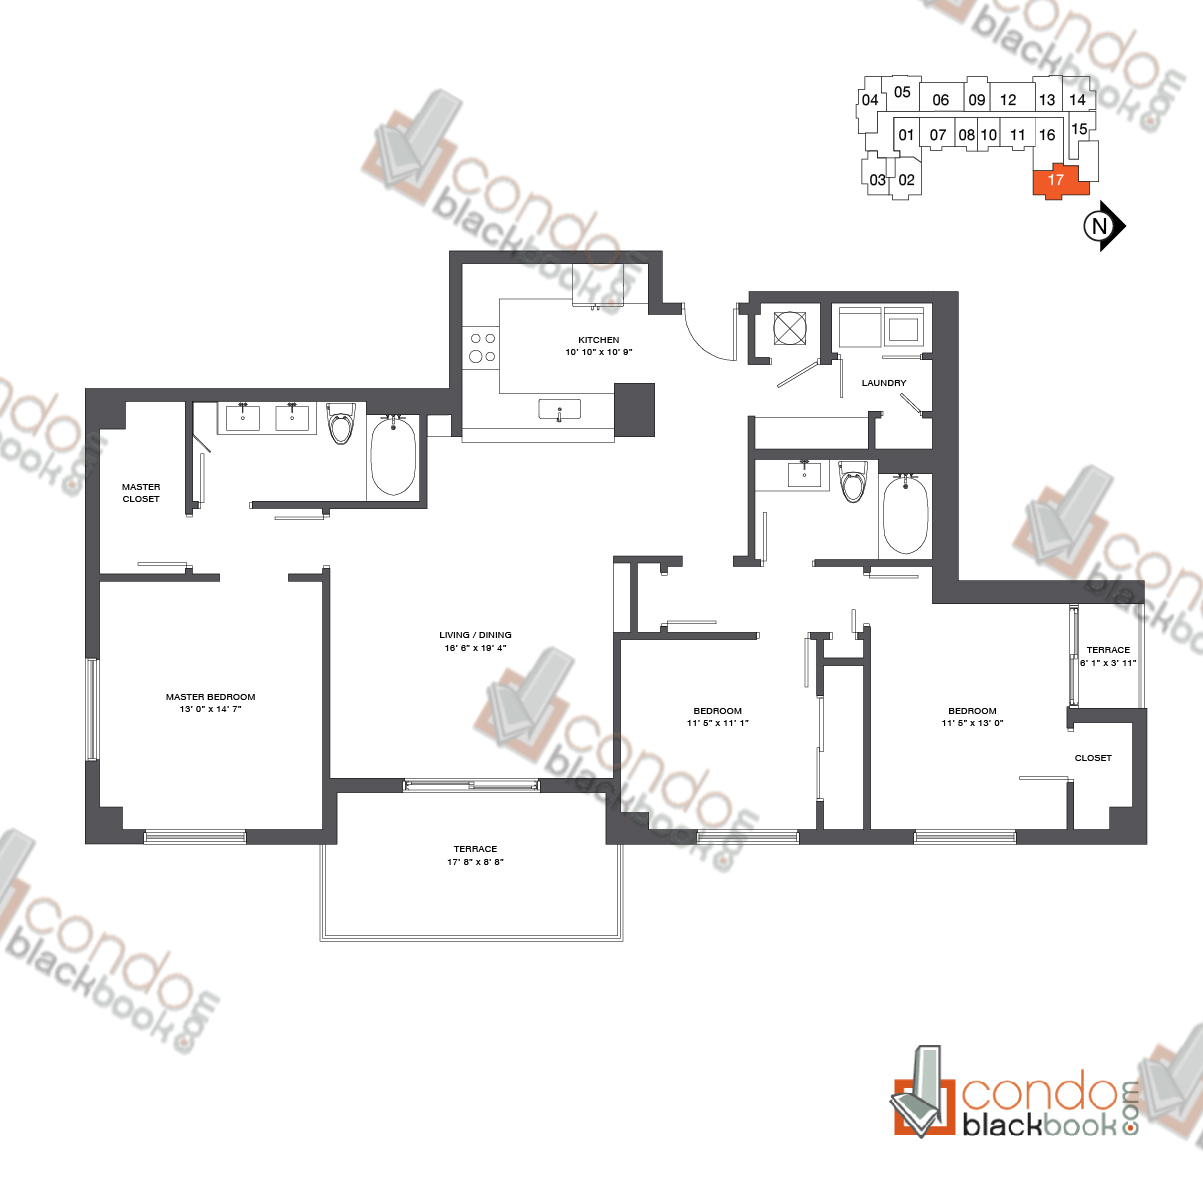 Floor plan for Nine at Mary Brickell Village Brickell Miami, model Residence 12-33_17, line 17, 3/2 bedrooms, 1,596 sq ft